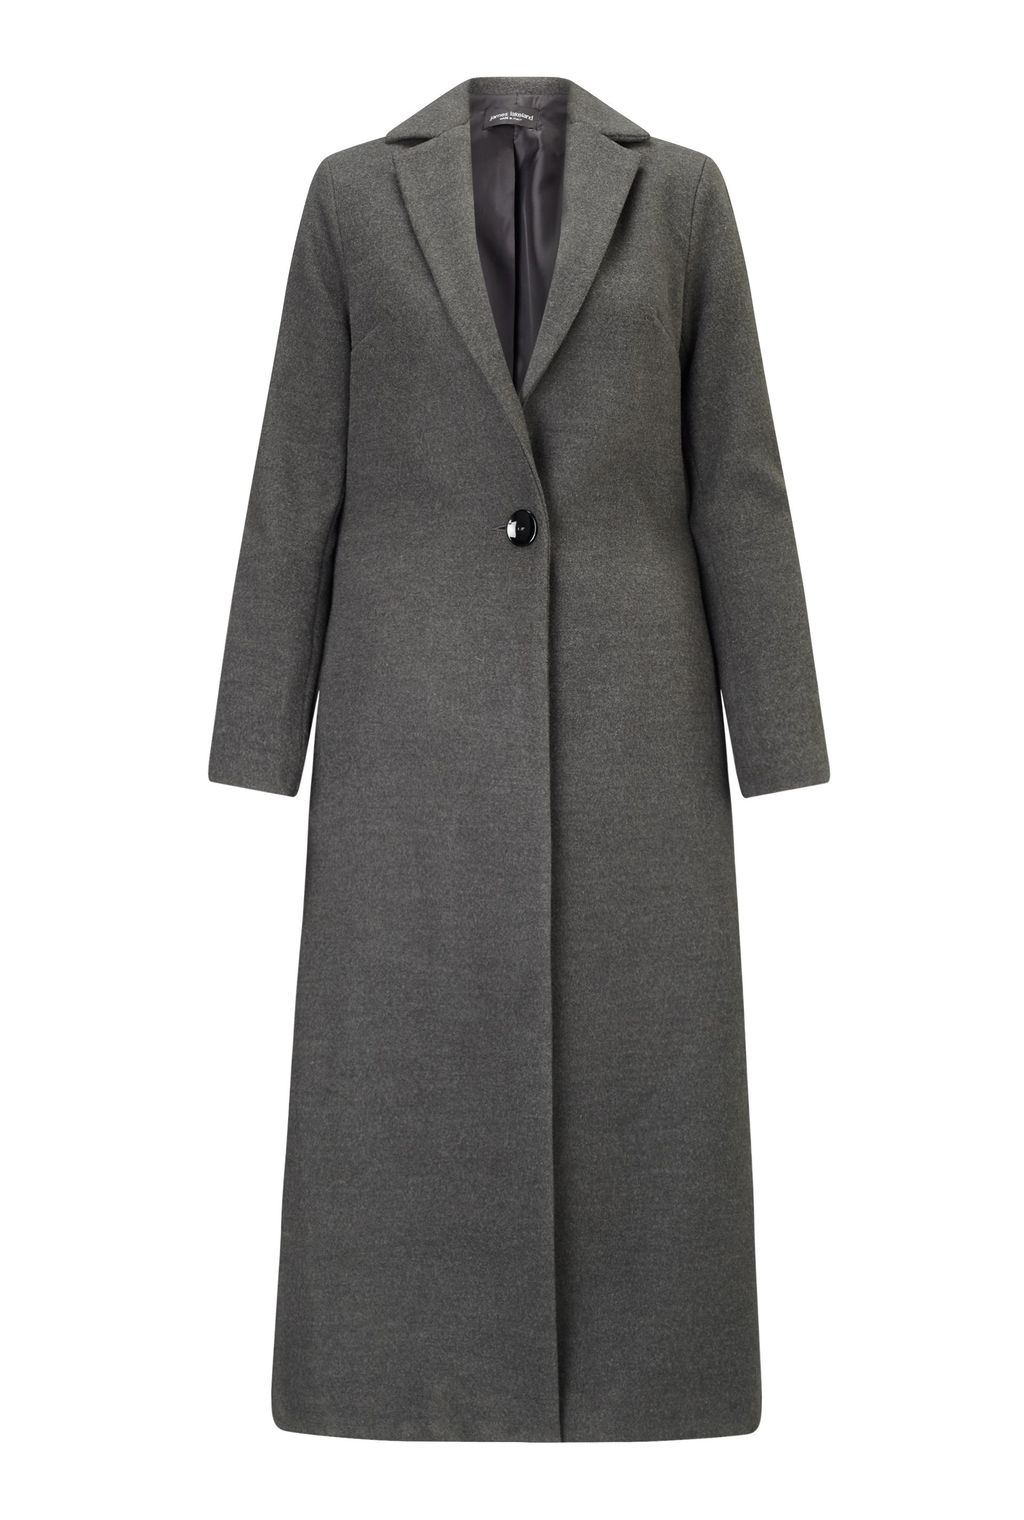 Long One Button Coat, Grey - pattern: plain; style: single breasted; collar: standard lapel/rever collar; length: calf length; predominant colour: charcoal; occasions: casual; fit: tailored/fitted; fibres: polyester/polyamide - stretch; sleeve length: long sleeve; sleeve style: standard; collar break: medium; pattern type: fabric; texture group: other - bulky/heavy; wardrobe: basic; season: a/w 2016